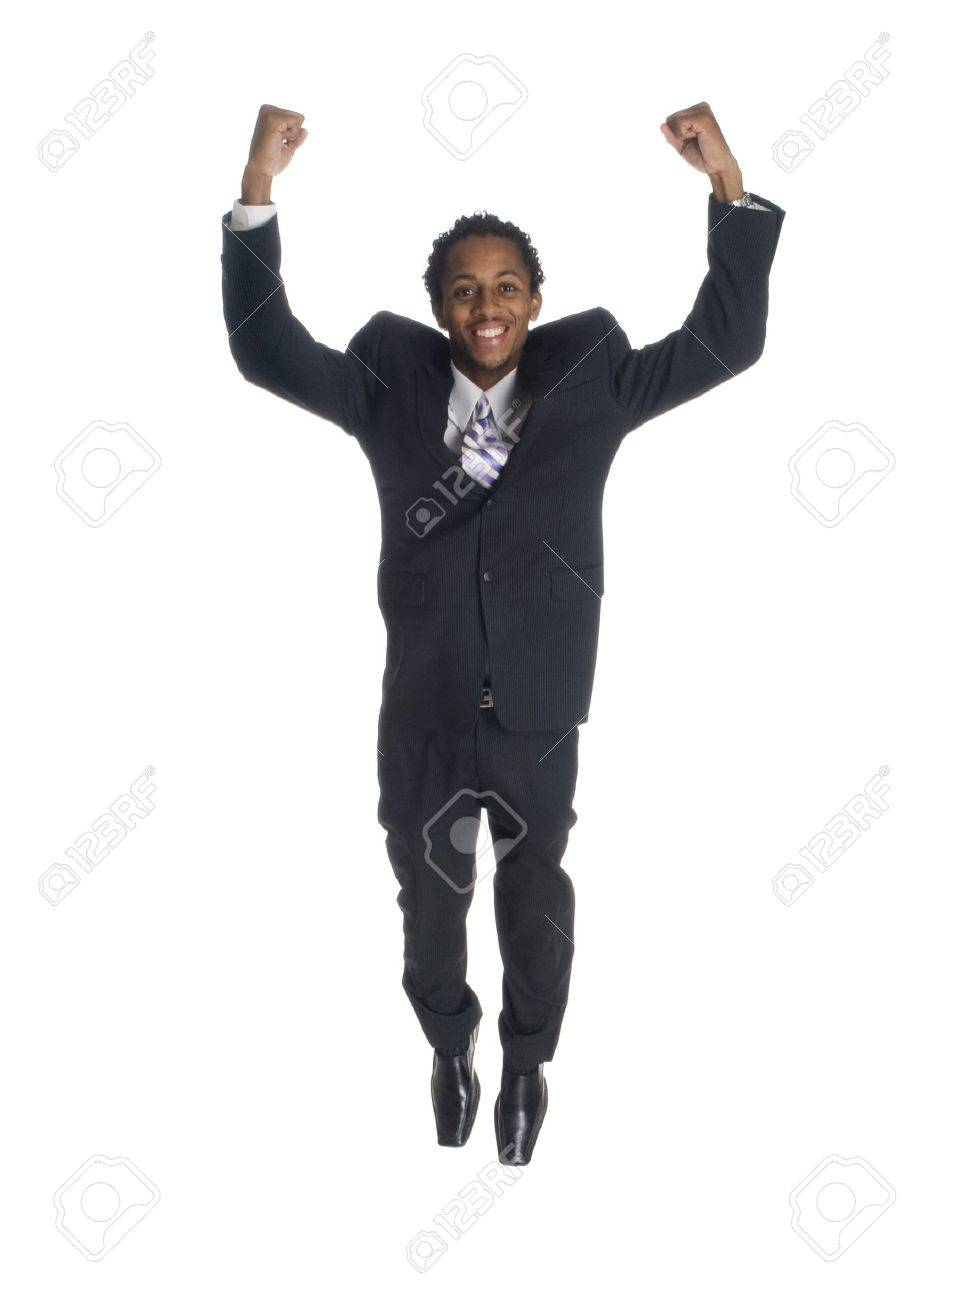 isolated studio shot of a businessman jumping for joy with clenched